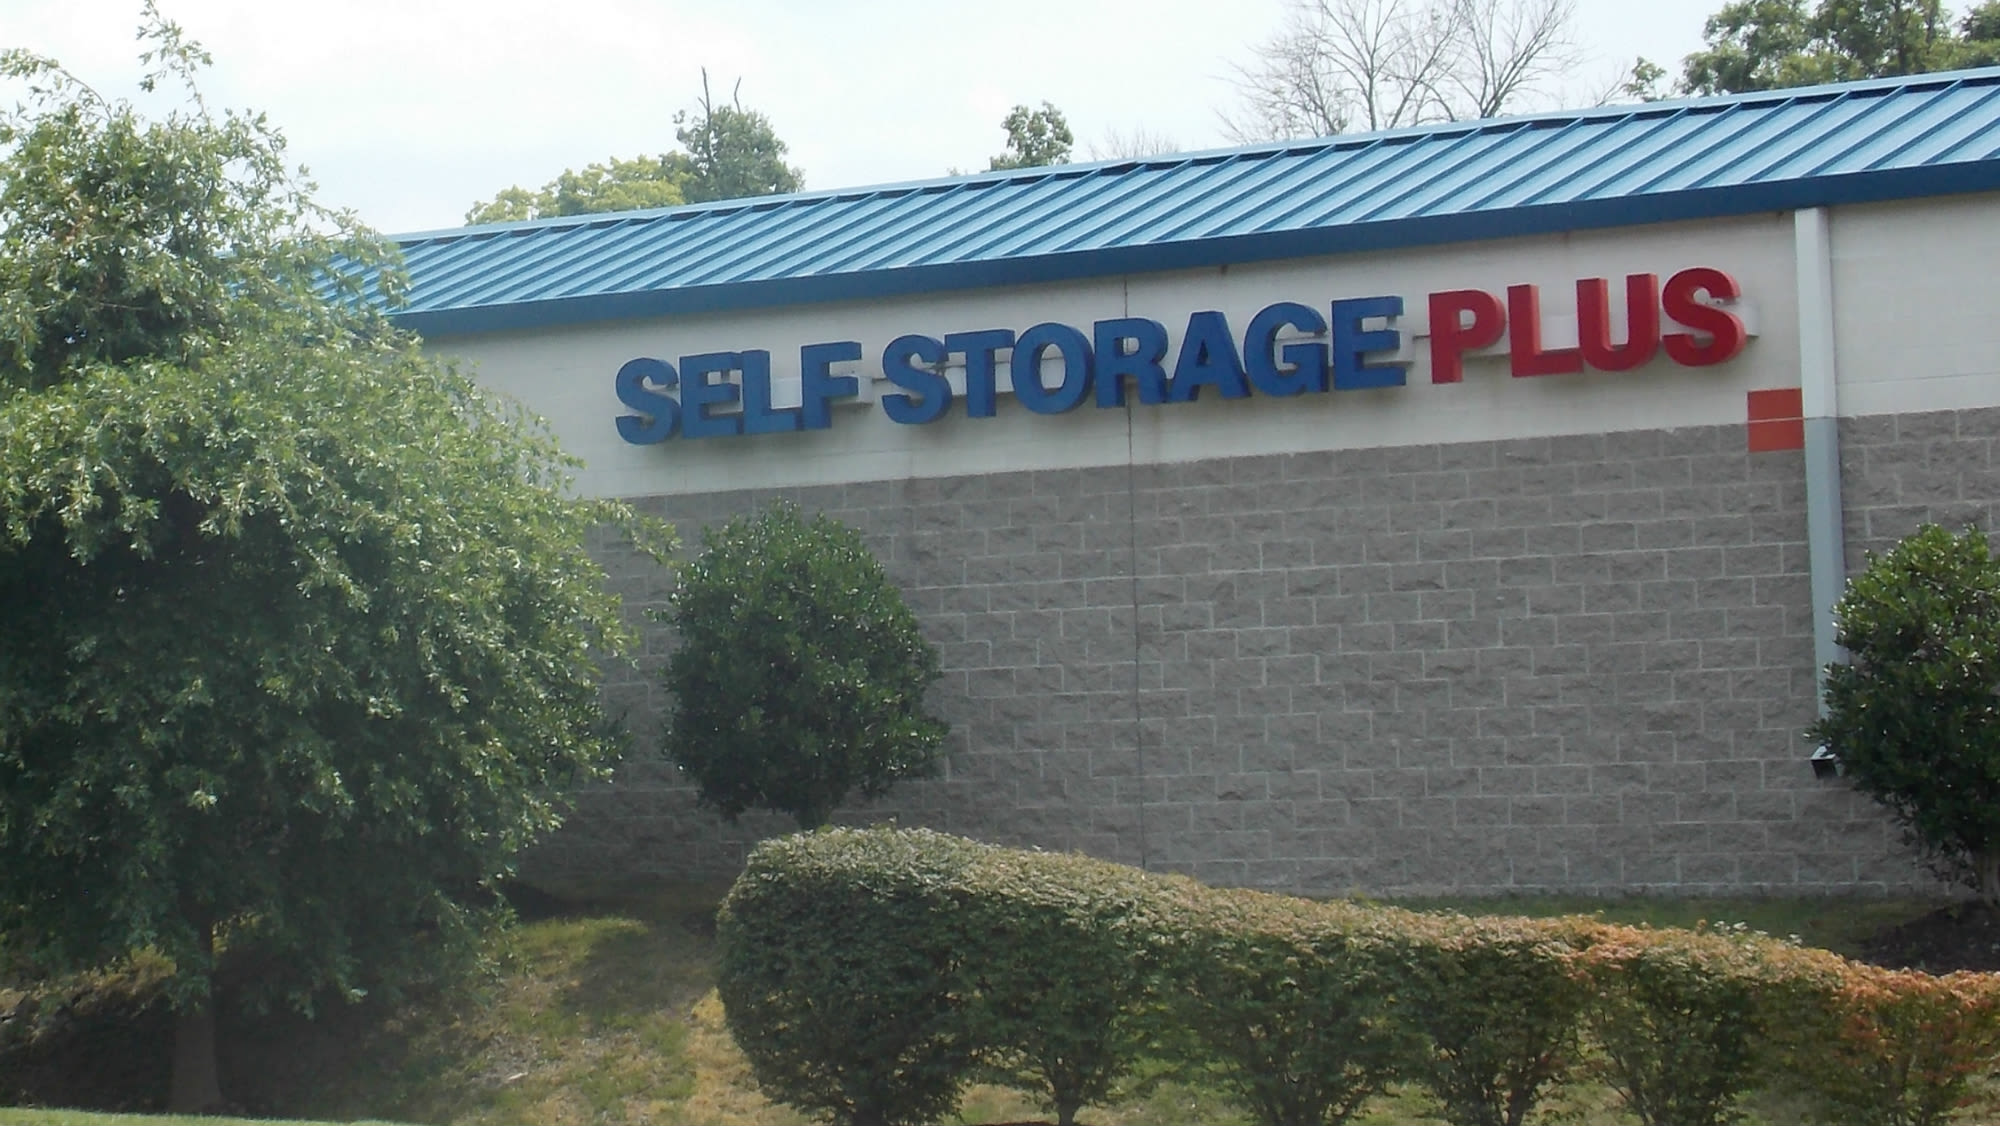 Sign at Self Storage Plus in Sterling, VA